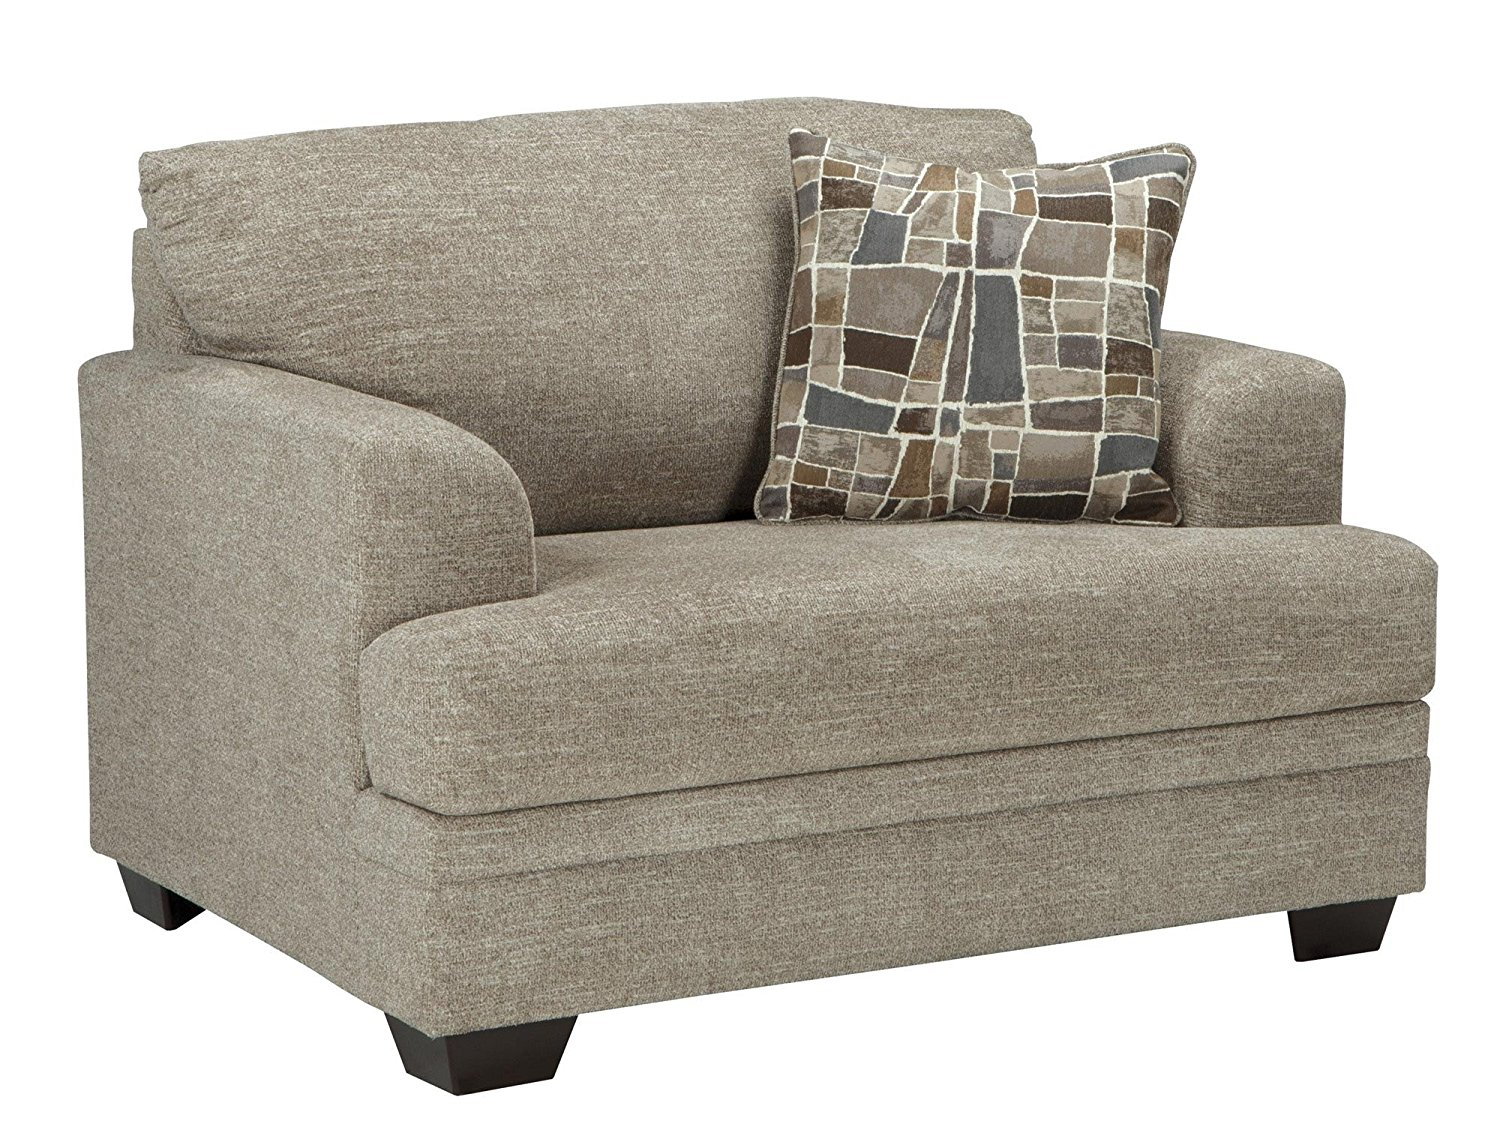 """Benchcraft Barrish Collection 4850123 51"""" Chair and a Half with Fabric Upholstery Tri-Block Feet Removable Seat Cushions and Traditional Style in"""